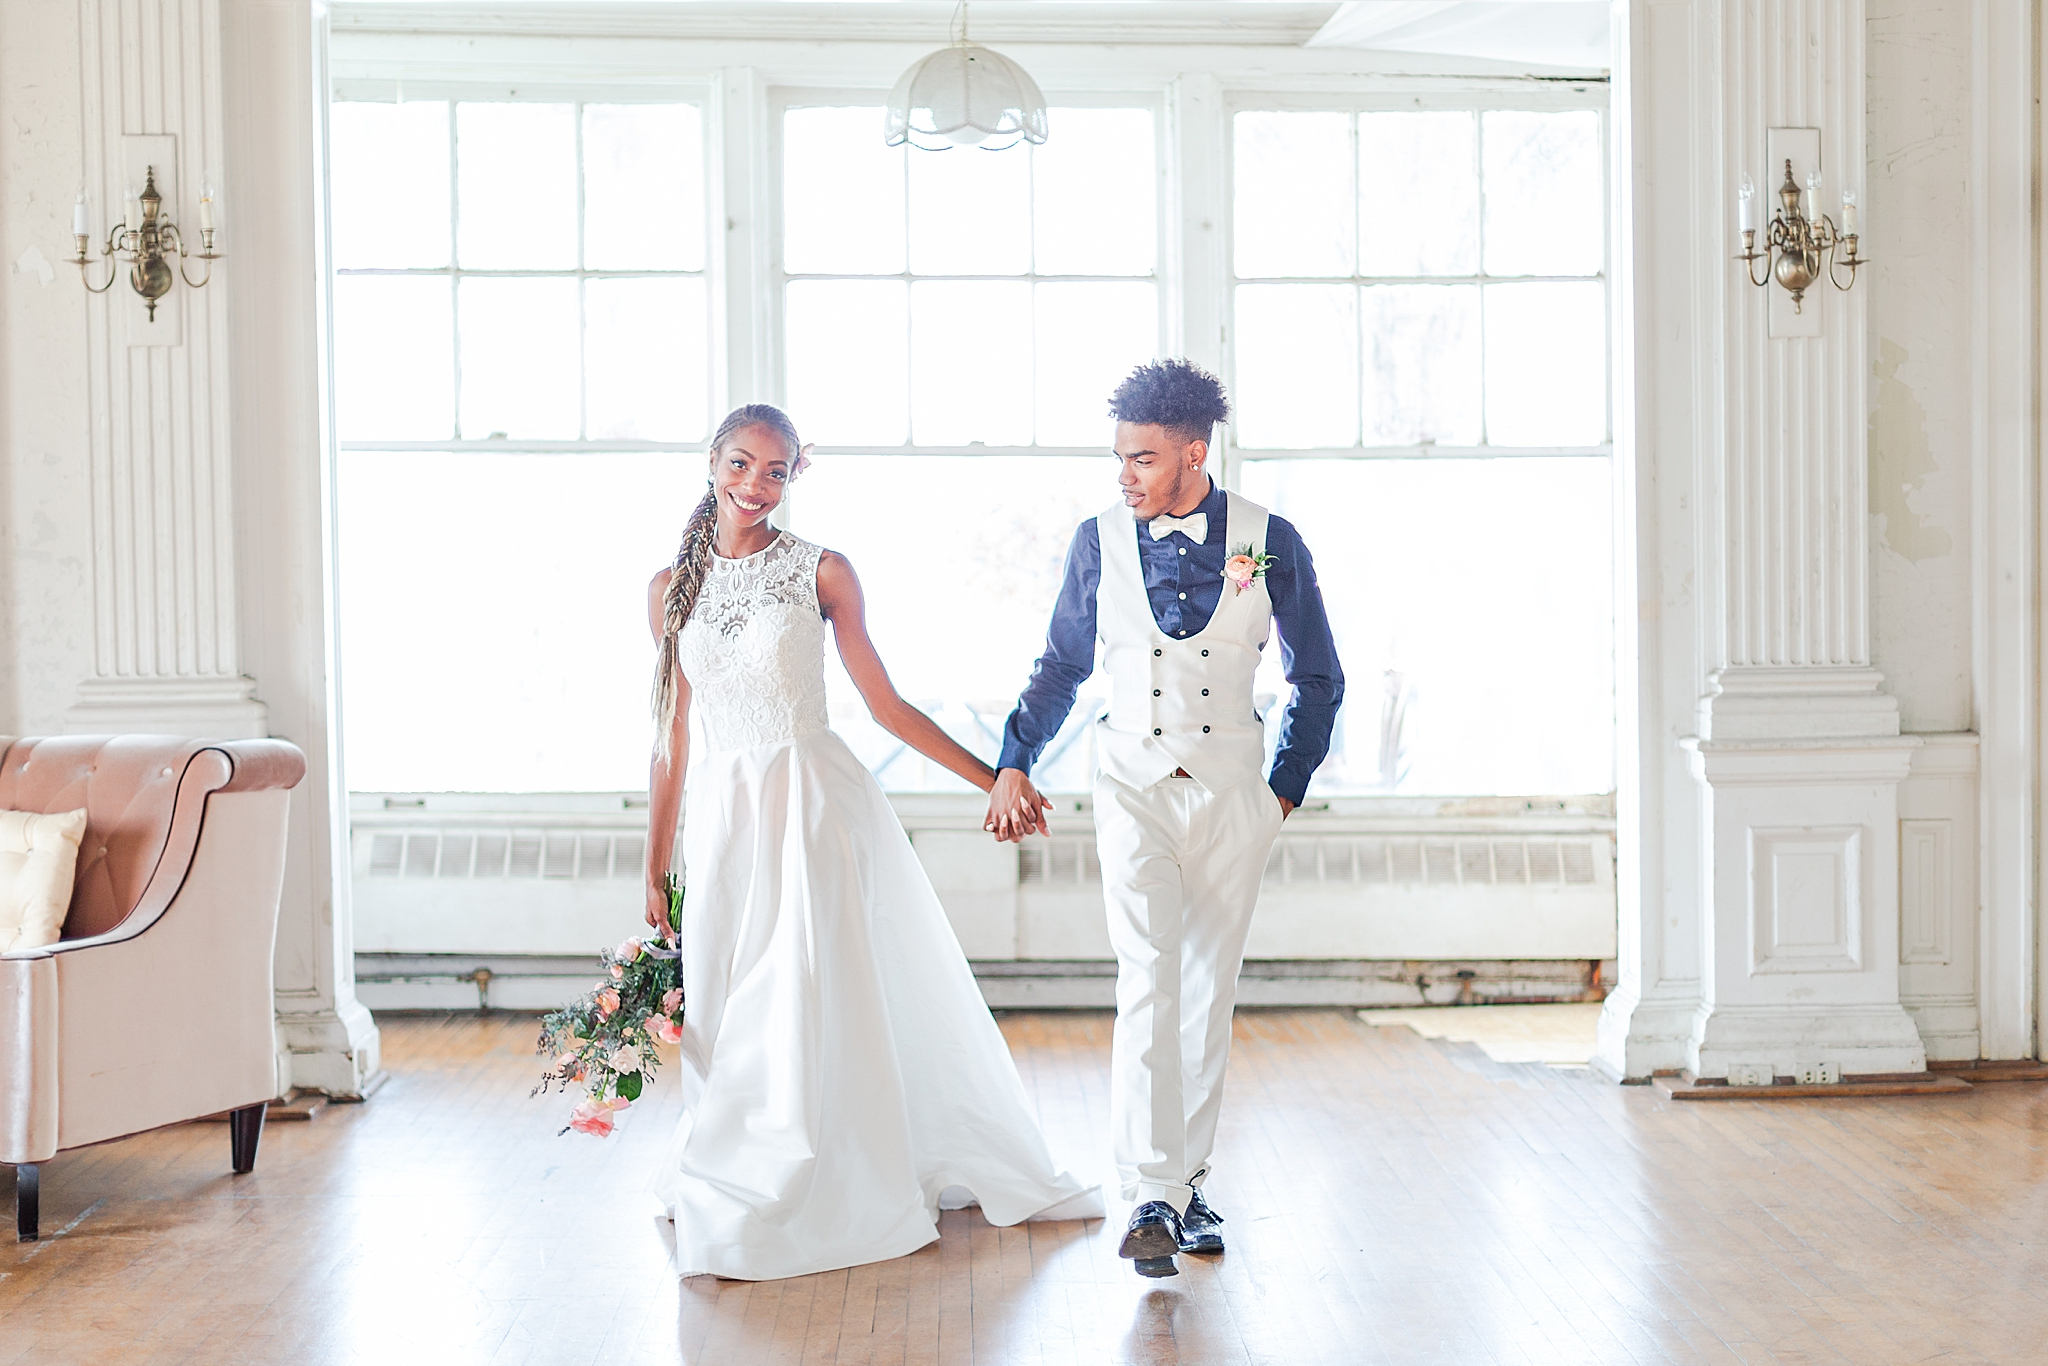 intimate-elopement-wedding-photography-at-belle-isle-boat-house-detroit-mi-by-courtney-carolyn-photography_0030.jpg